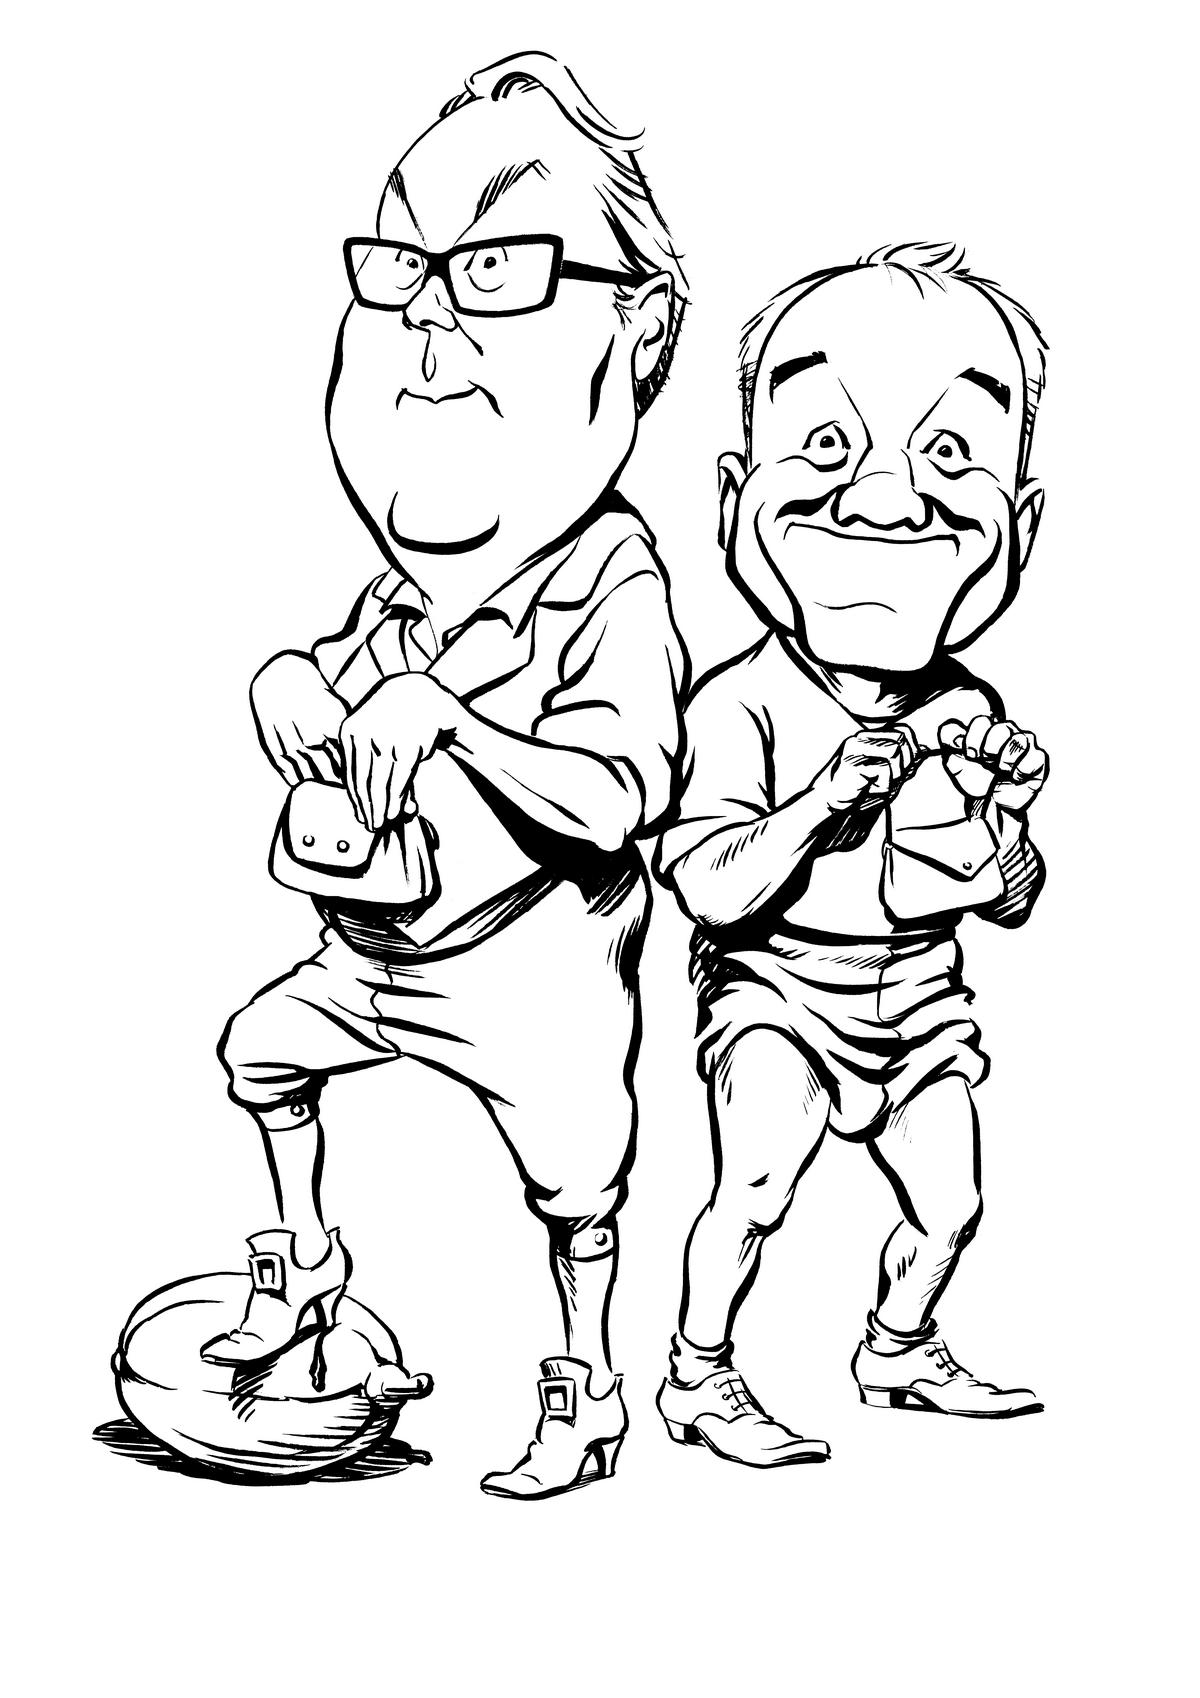 Vic and Bob caricature